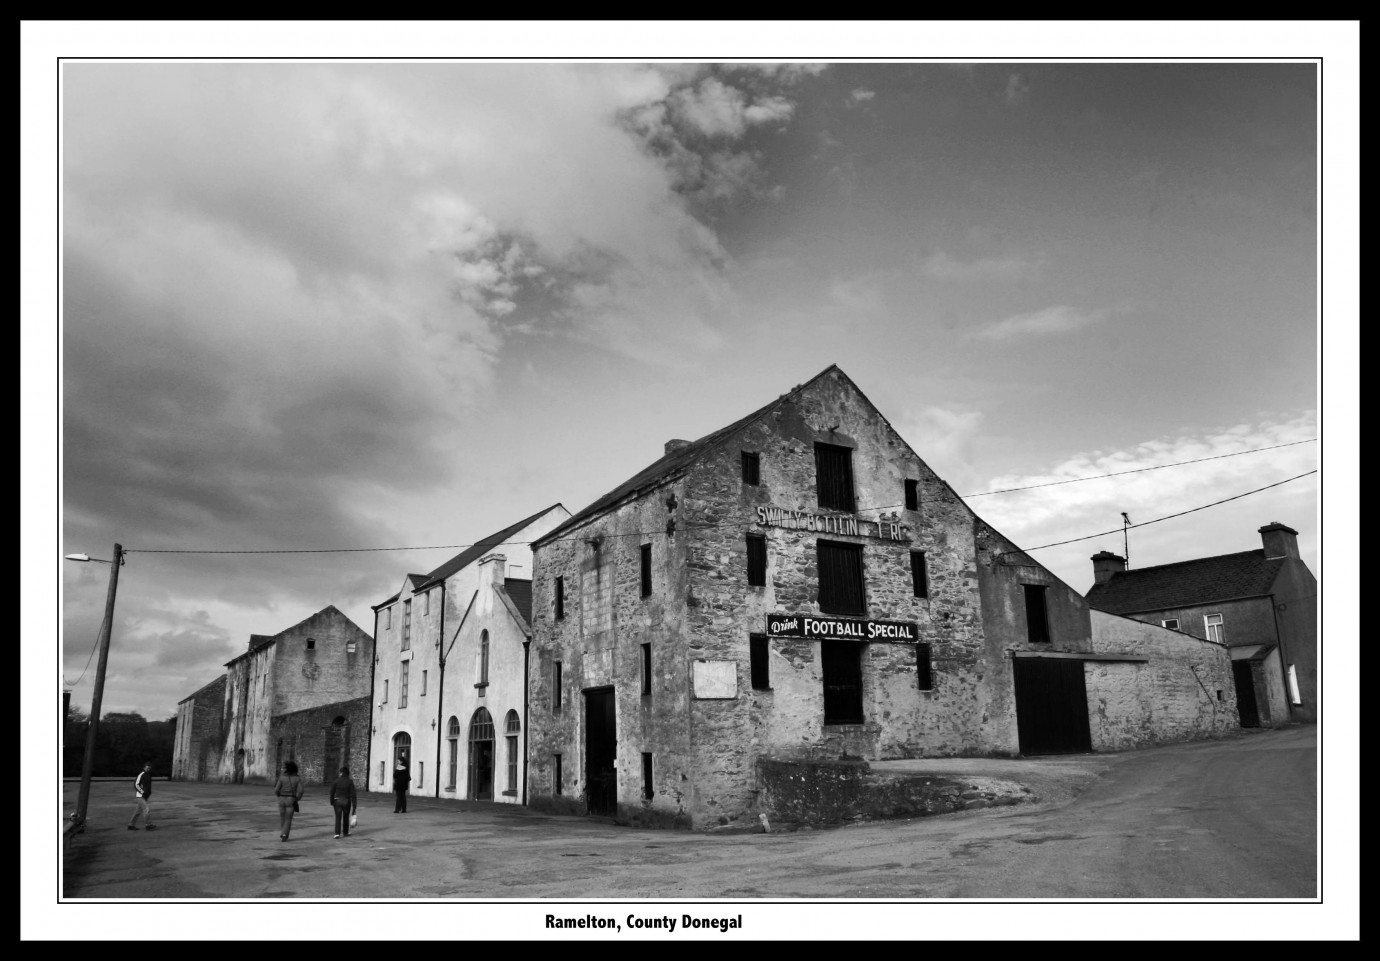 Ramelton County Donegal slideshow